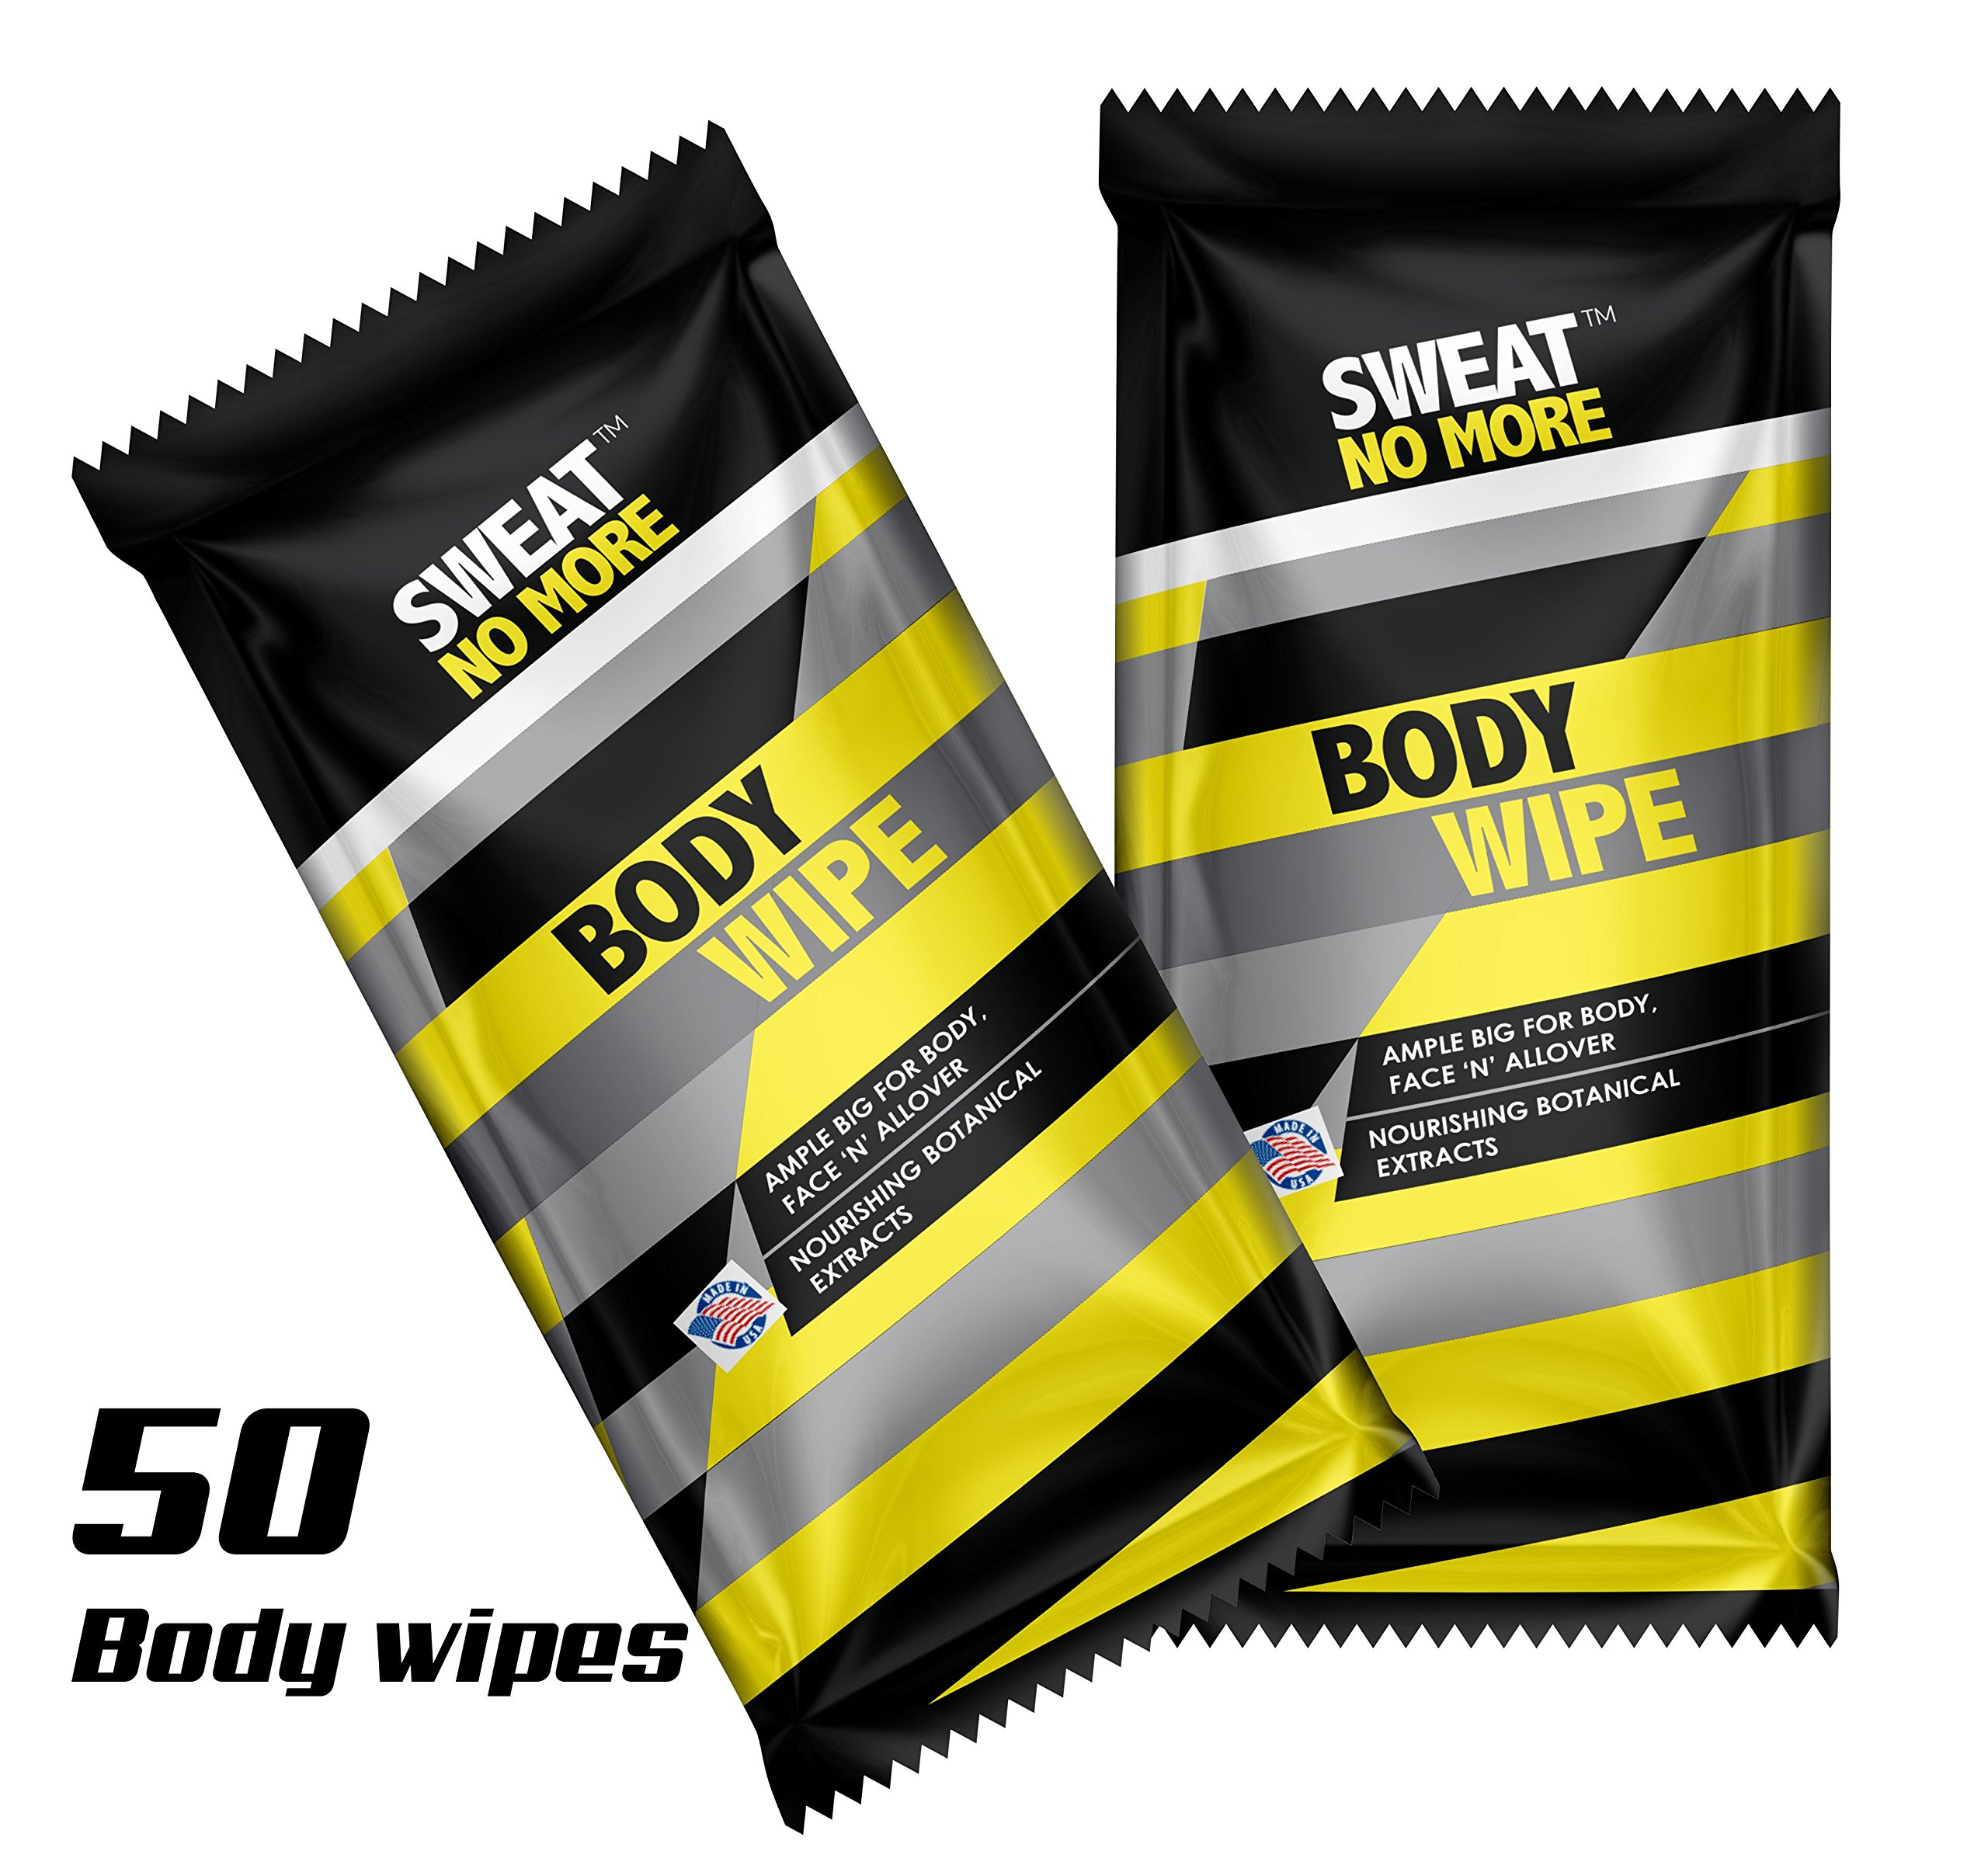 Sweat No More Extra Large 10 x 9'' Deodorizing Body Wipes for Outdoor Activities Cleaning and Deodorizing, Remover Sweat, Dirt and Body Odor, Individually Wrapped - Pack of 50